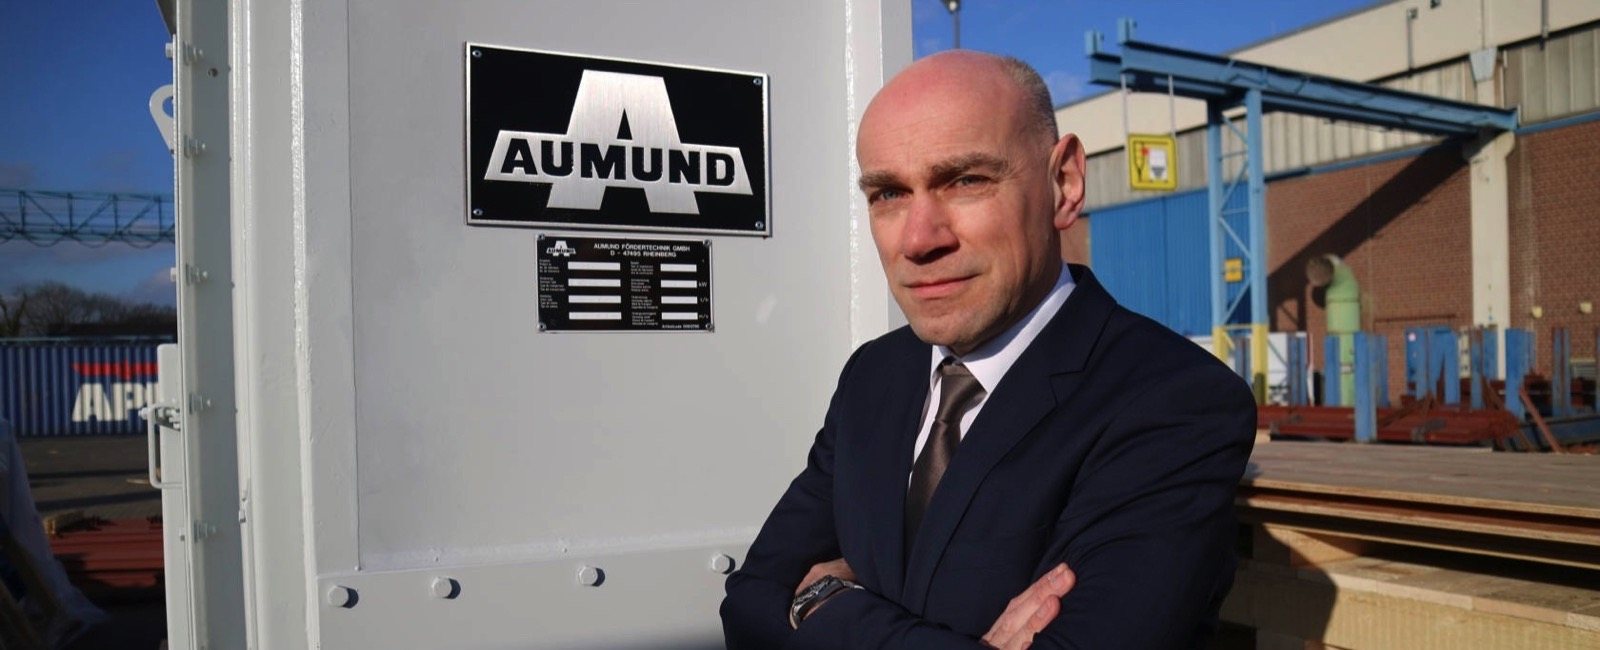 Reiner Furthmann Managing Director Technology at AUMUND Fördertechnik